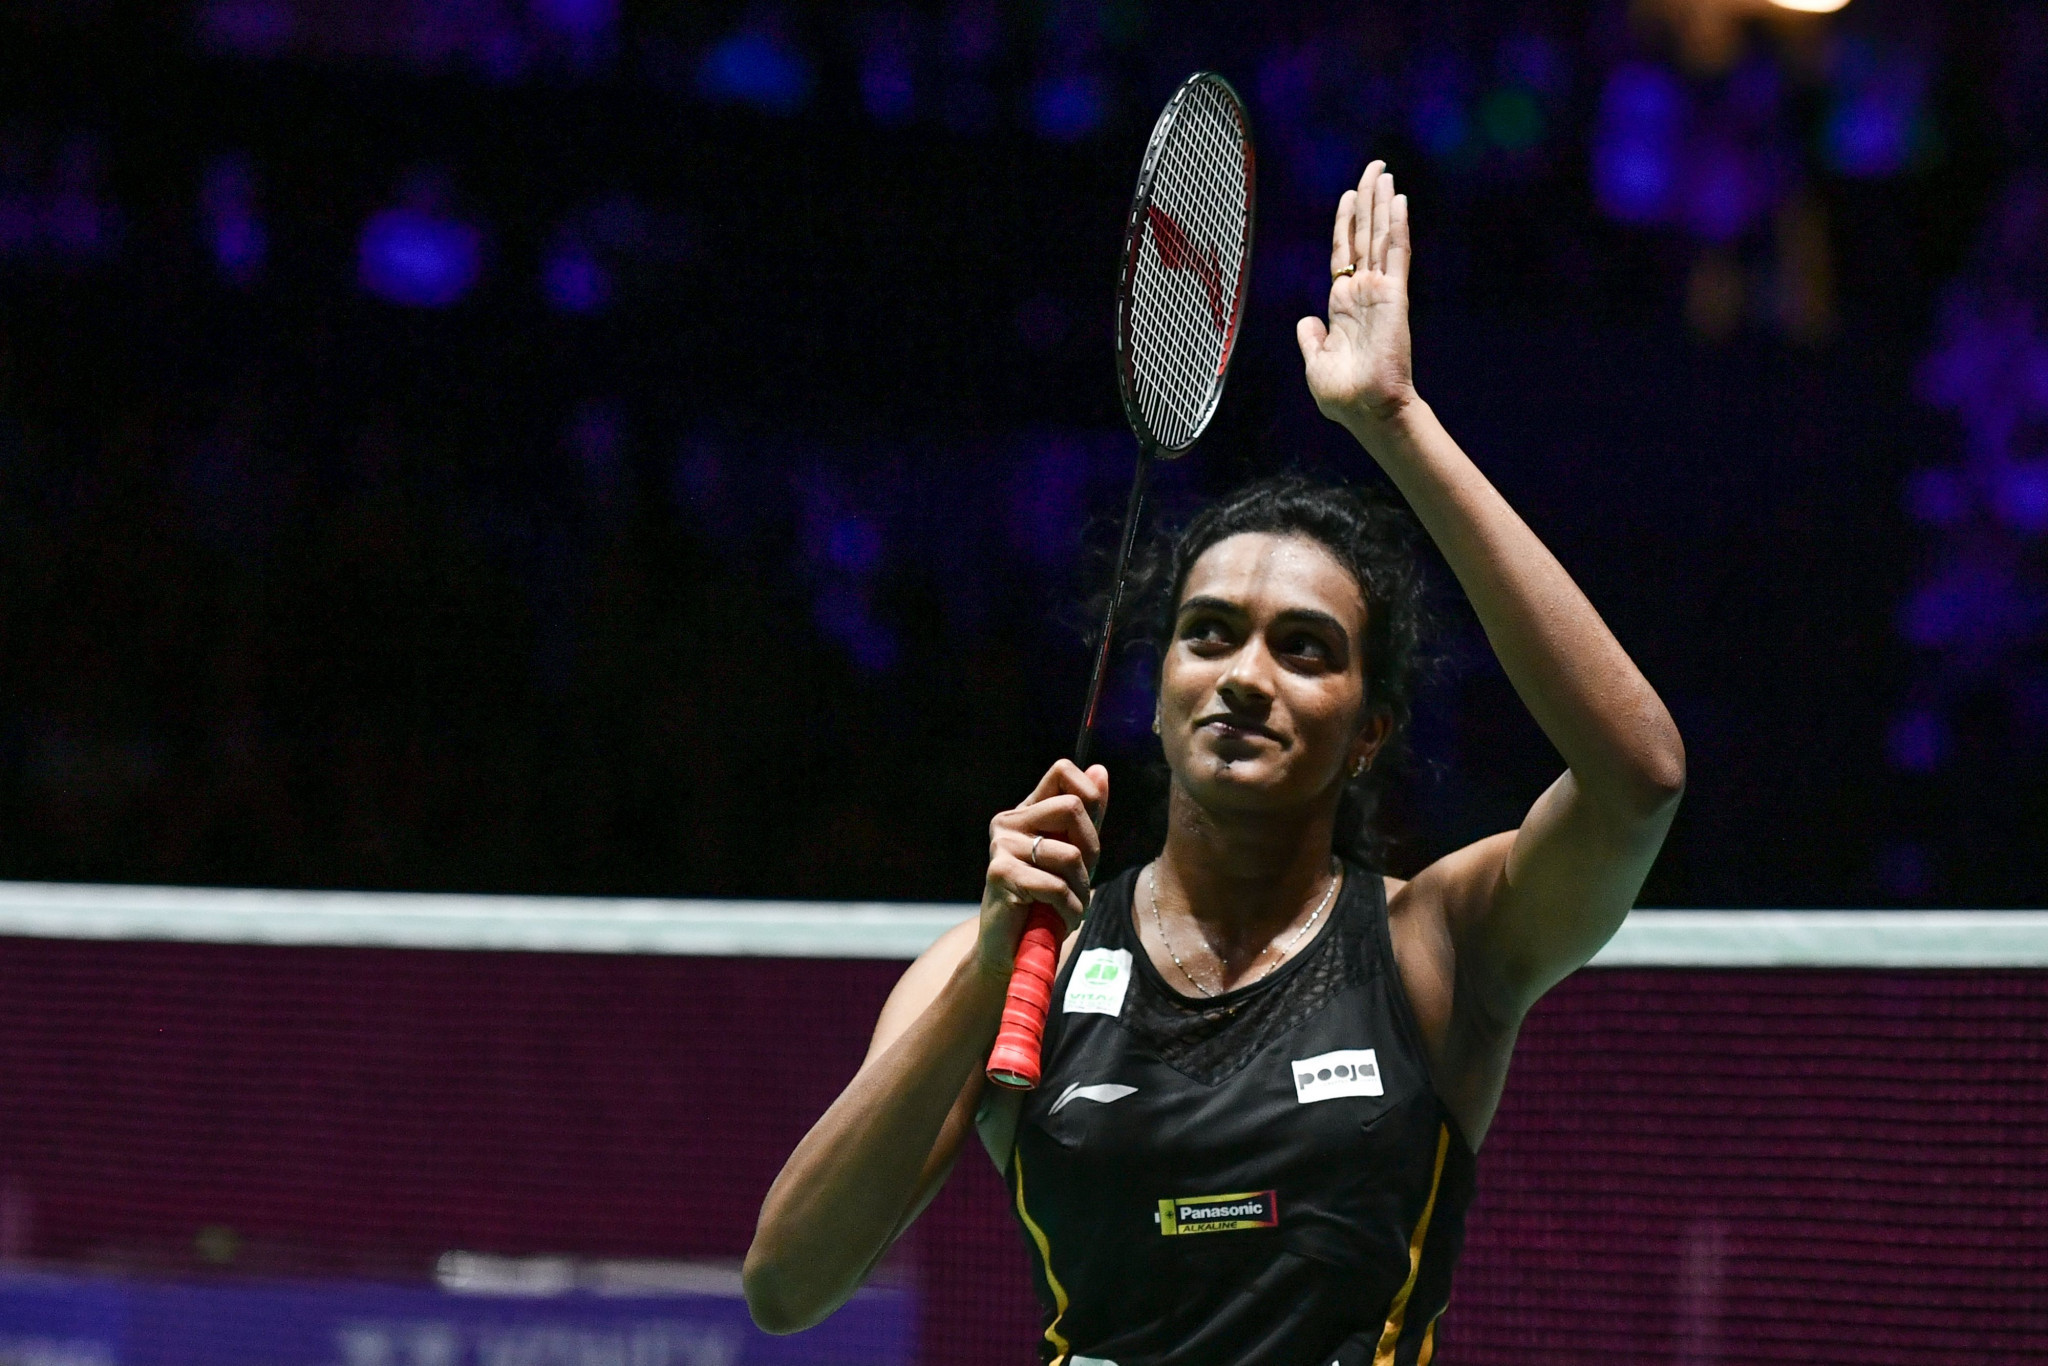 Second seed Sindhu Pusarla of India will face top seed Carolina Marin in the BWF Swiss Open final ©Getty Images